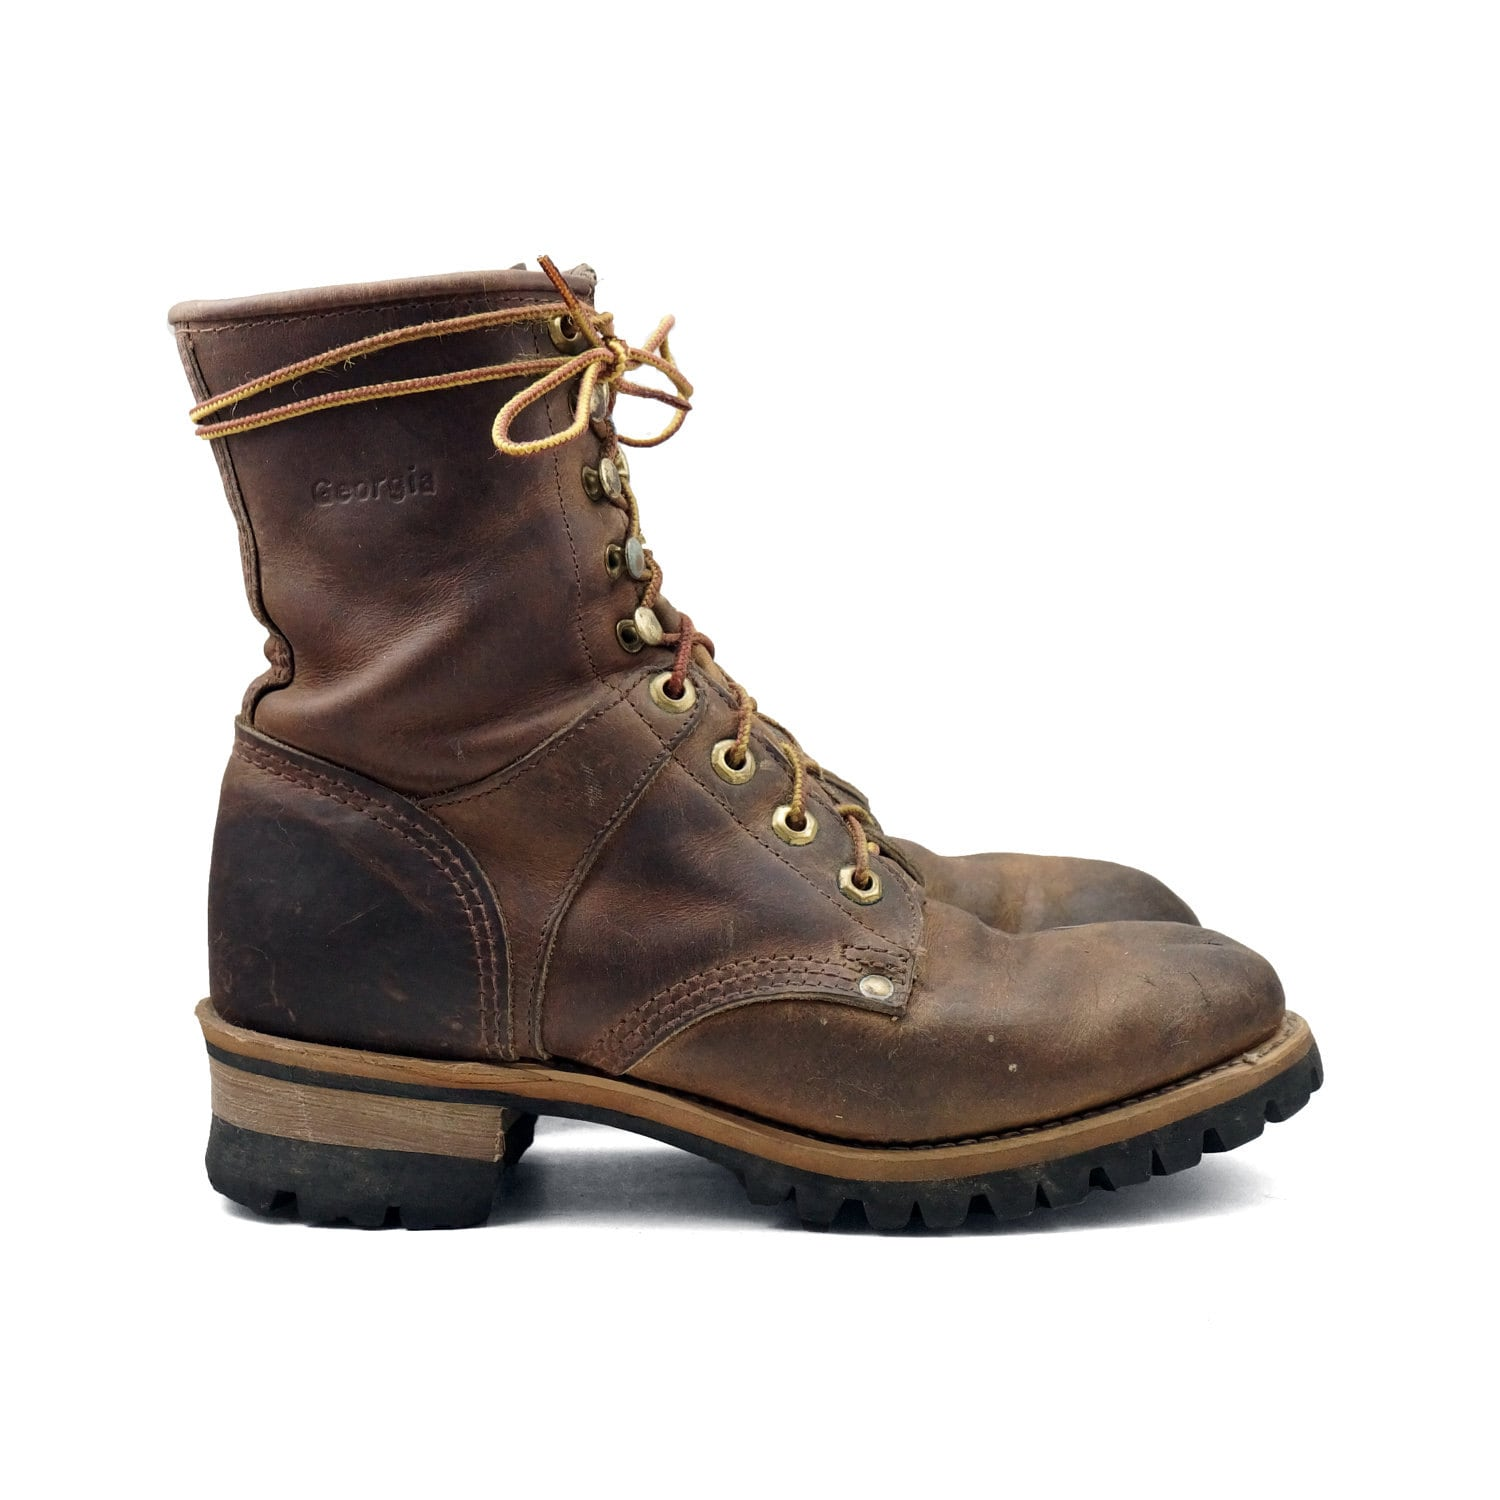 Rustic Women's Logger Boots: Lace up Hiker / Work Boot in